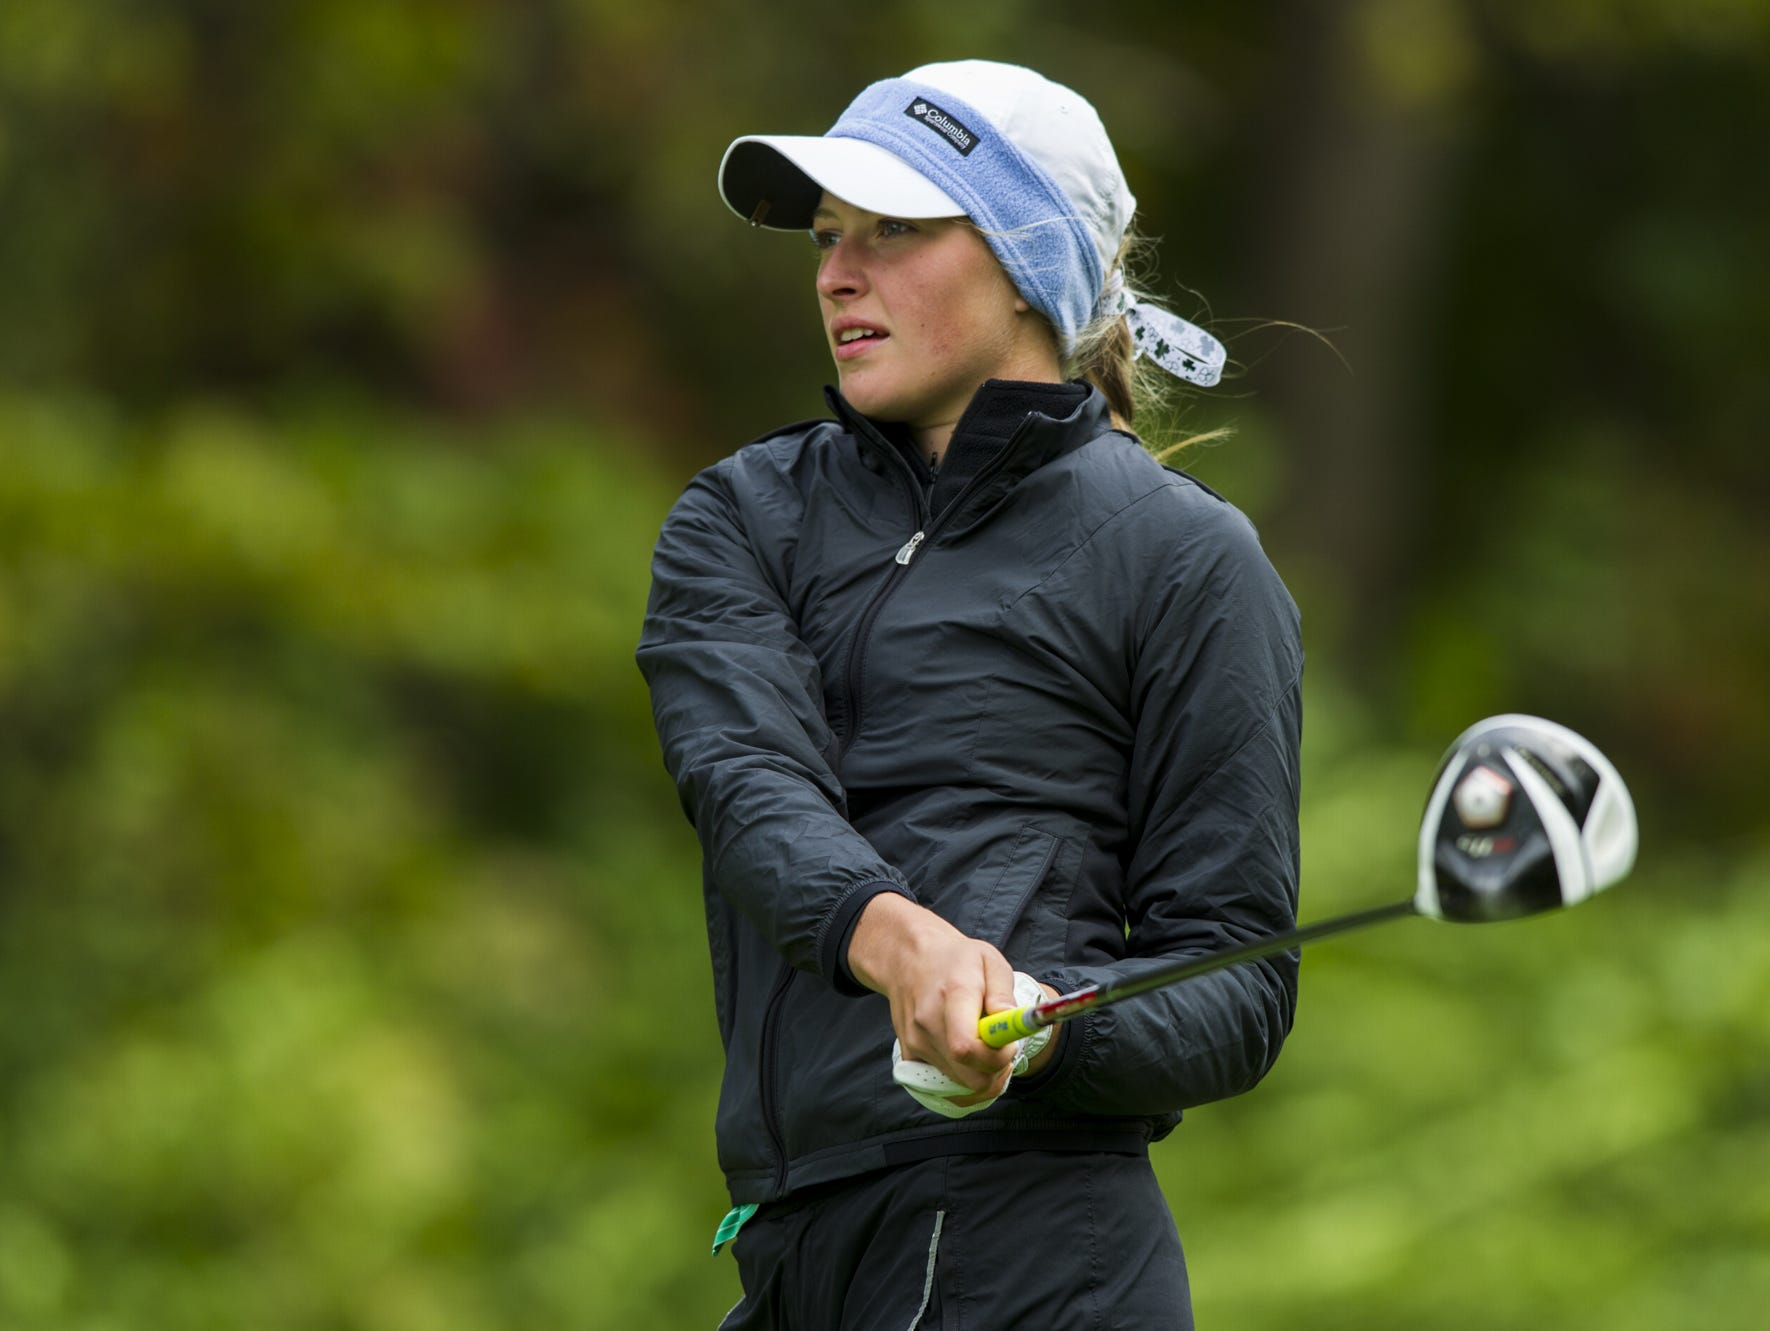 Westfield's Cailyn Henderson won the Indiana Junior PGA Open this summer.